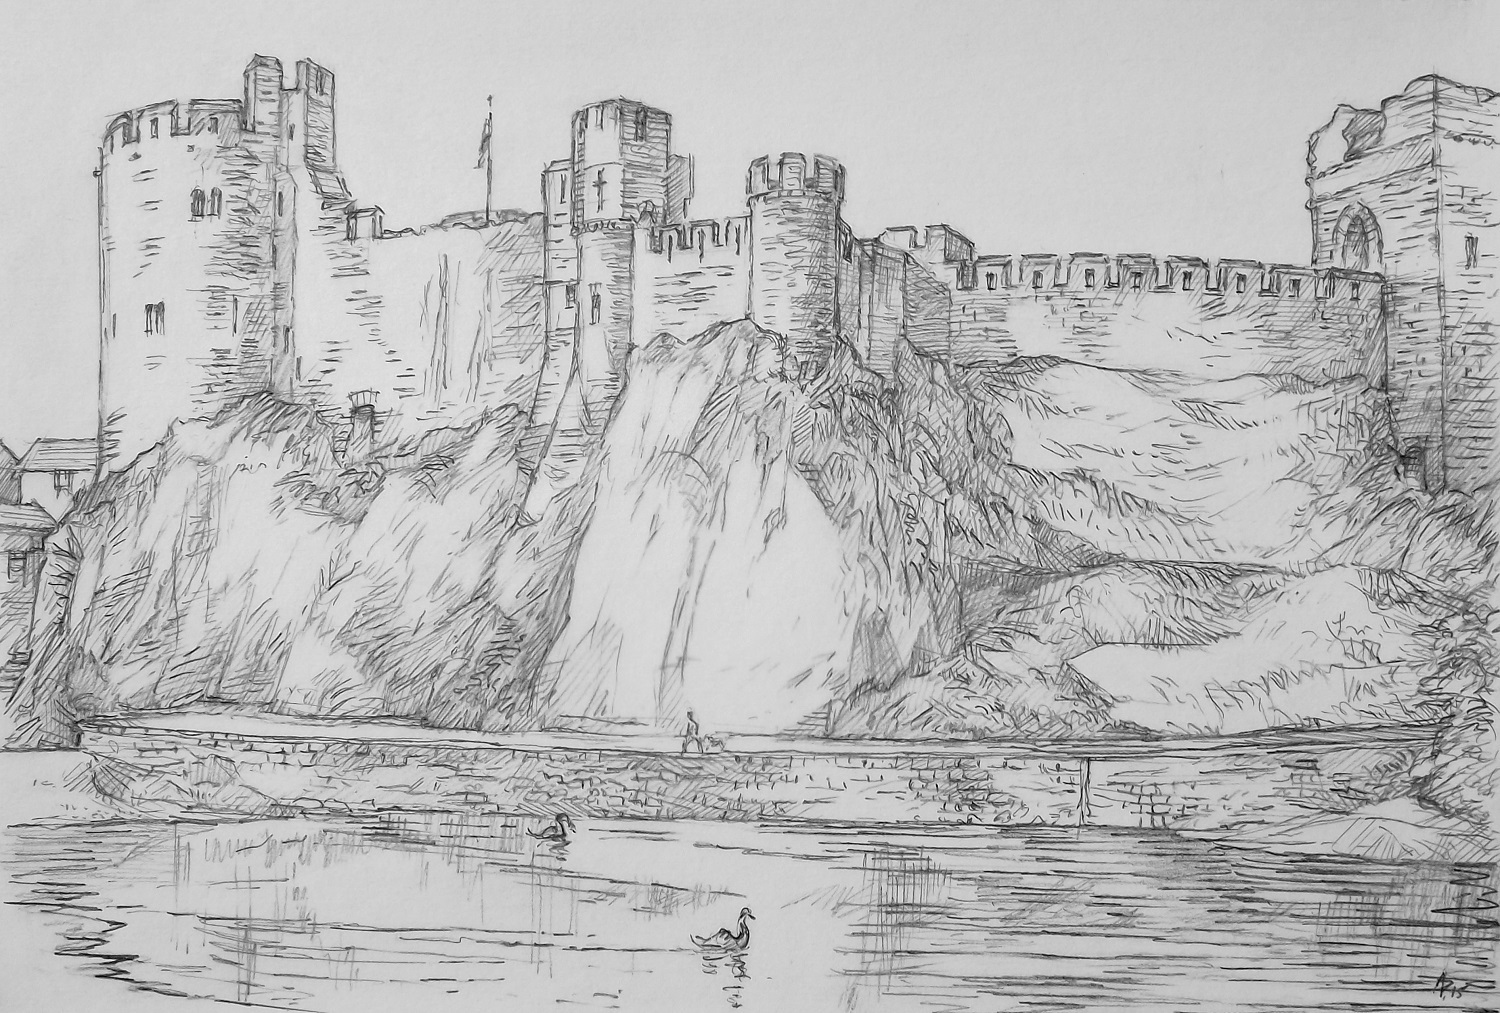 Architecture Drawing Pencil austen pinkerton artwork: pembroke castle | original drawing